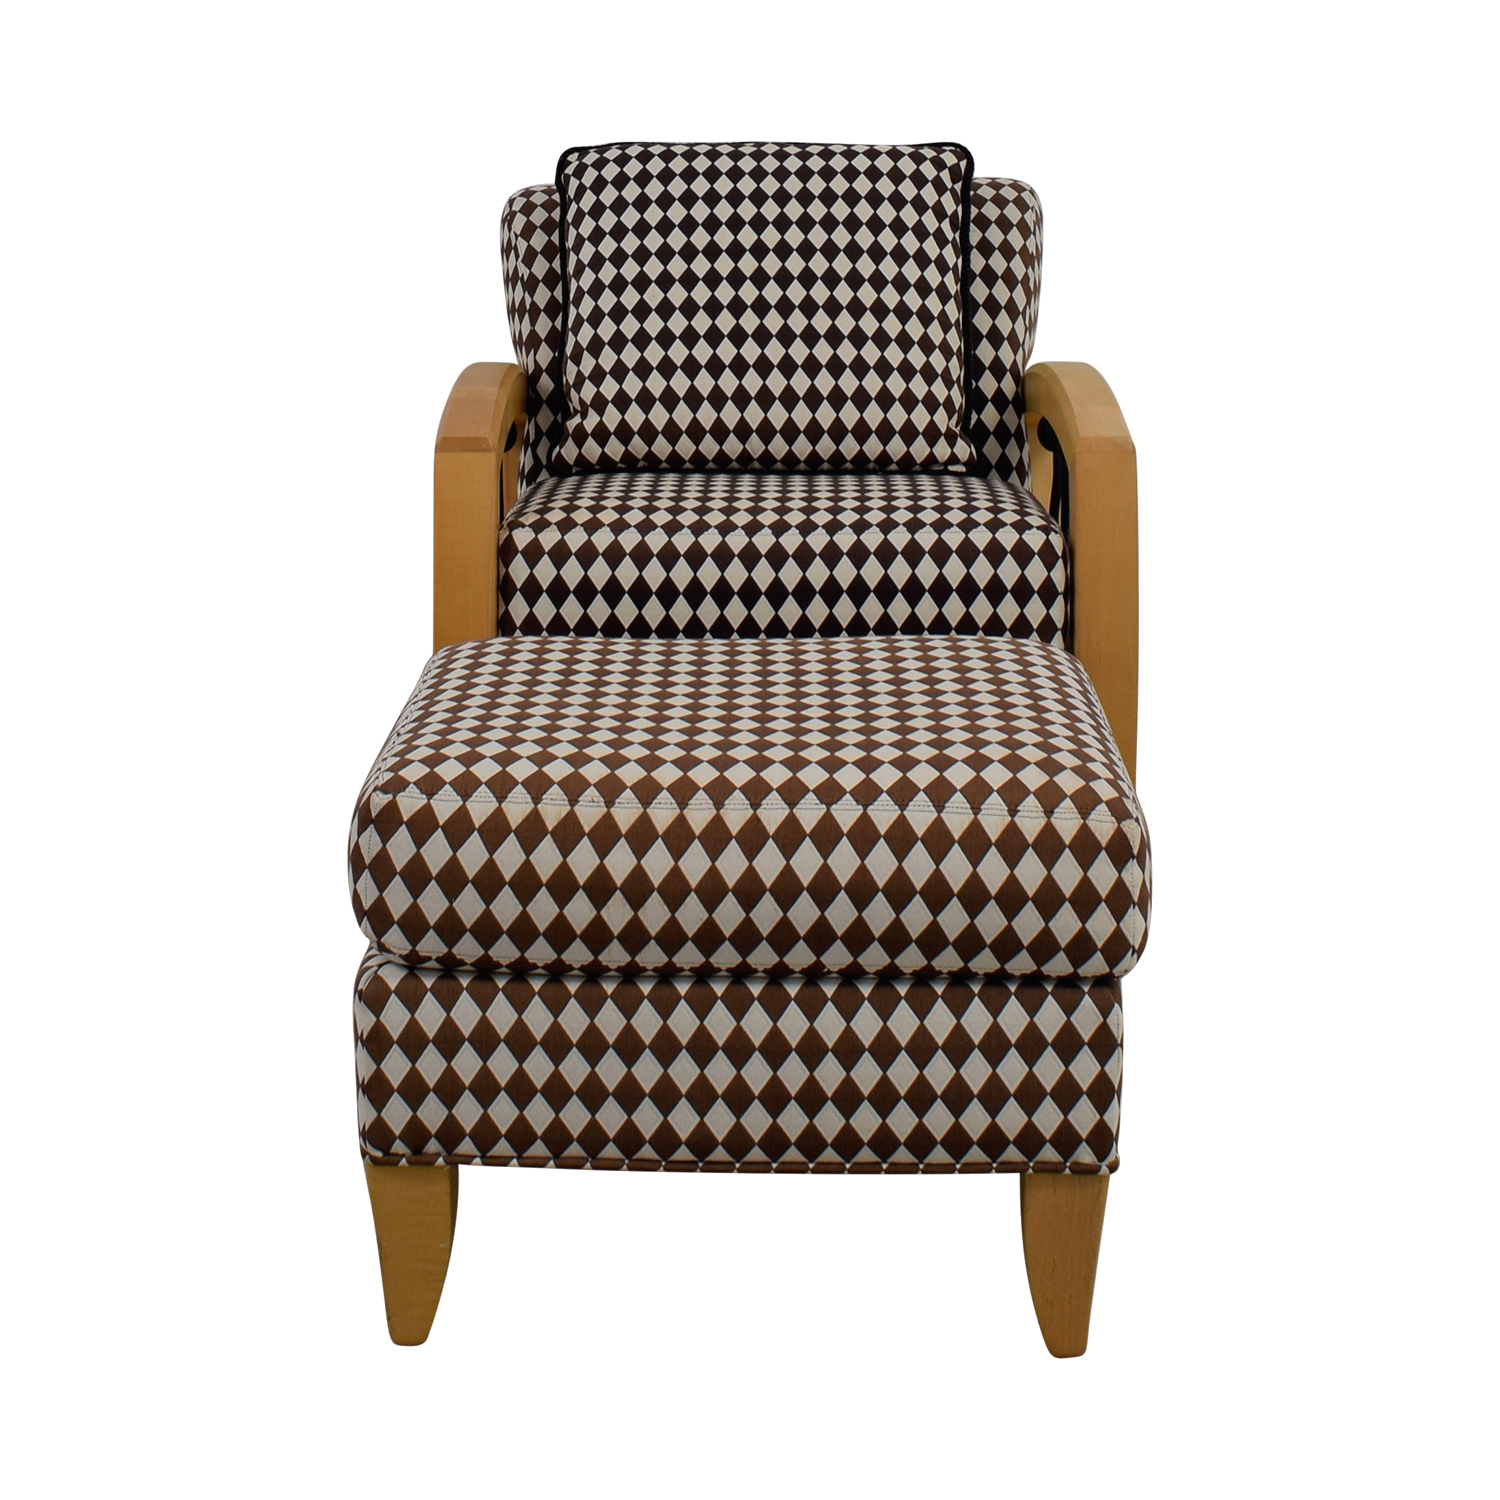 Thayer Coggin Cherry Wood Black And White Checkered Accent Chair With  Ottoman / Chairs ...